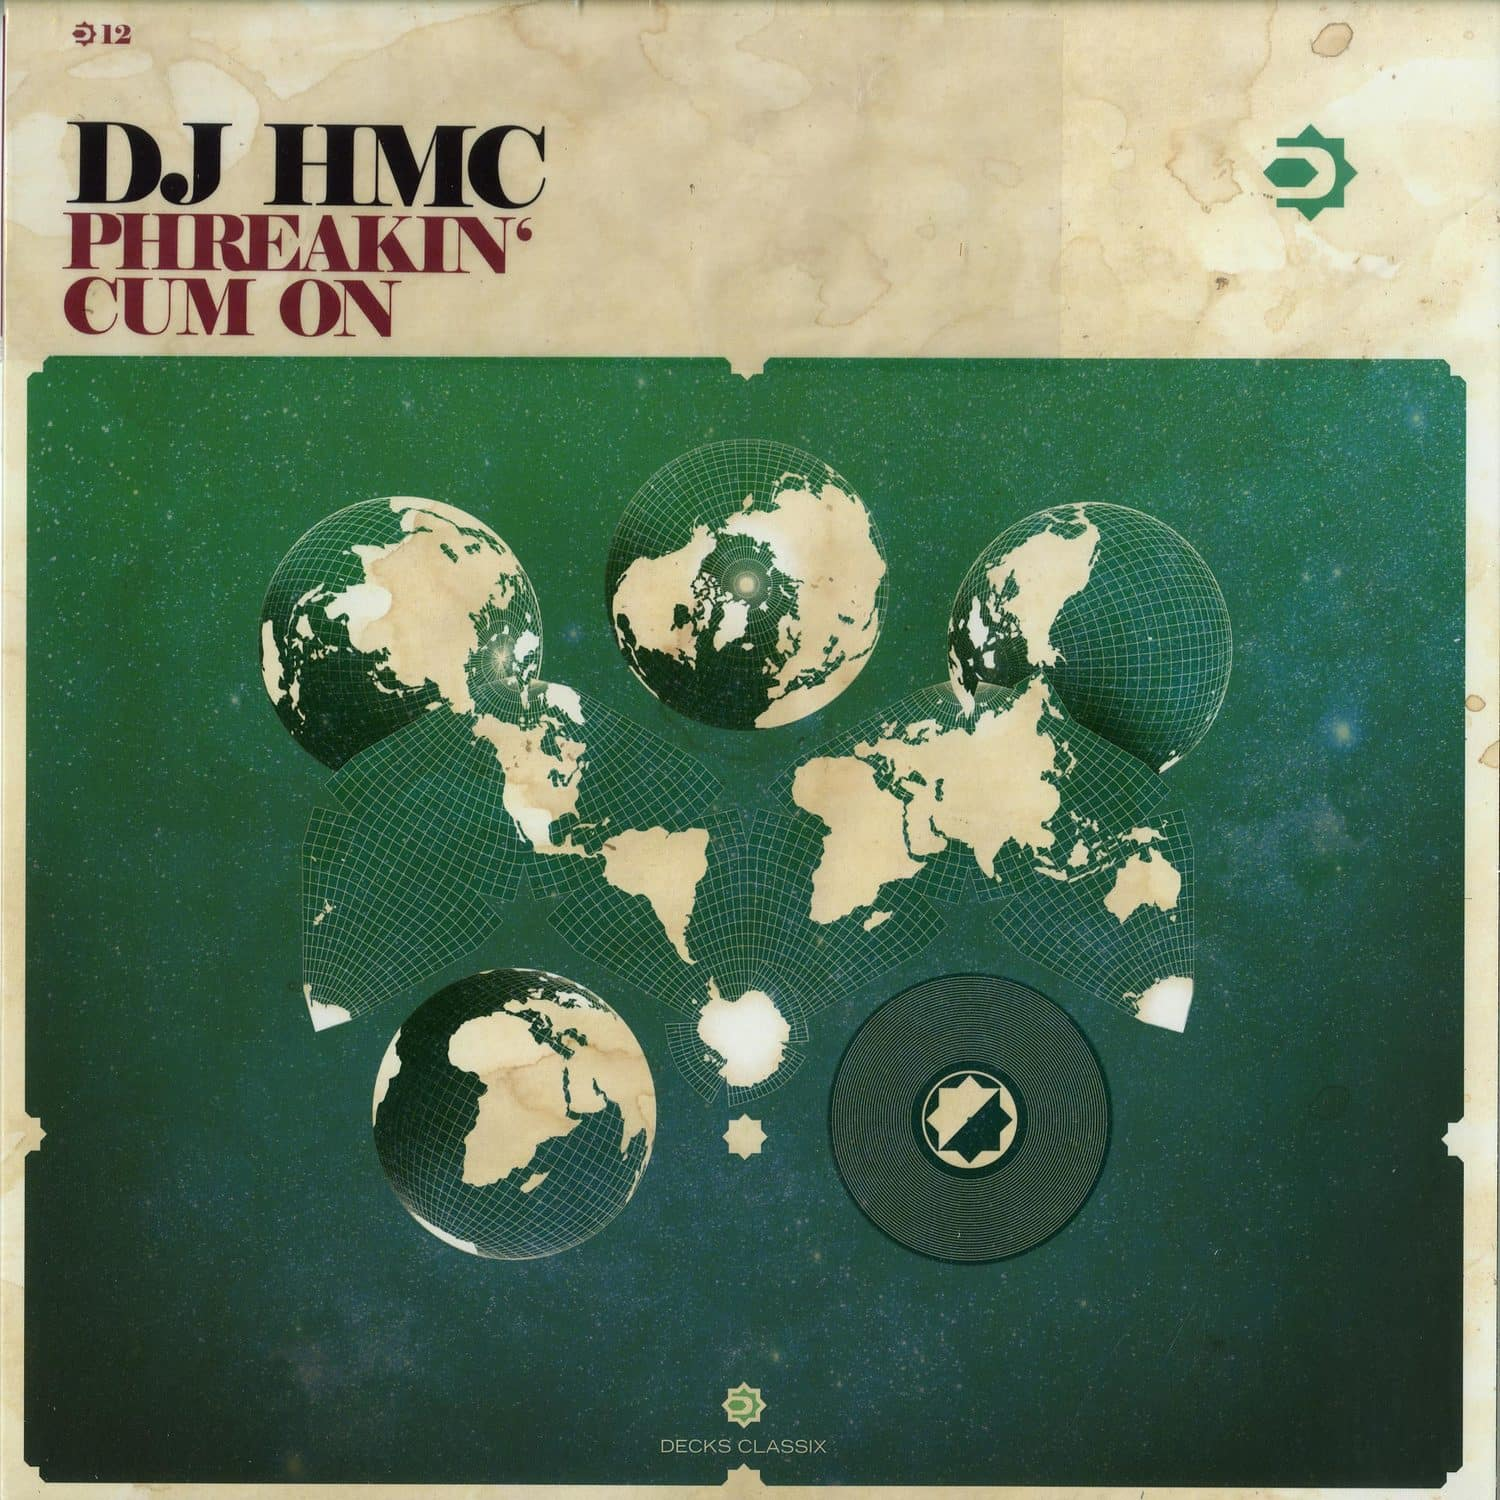 DJ HMC - PHREAKIN / CUM ON